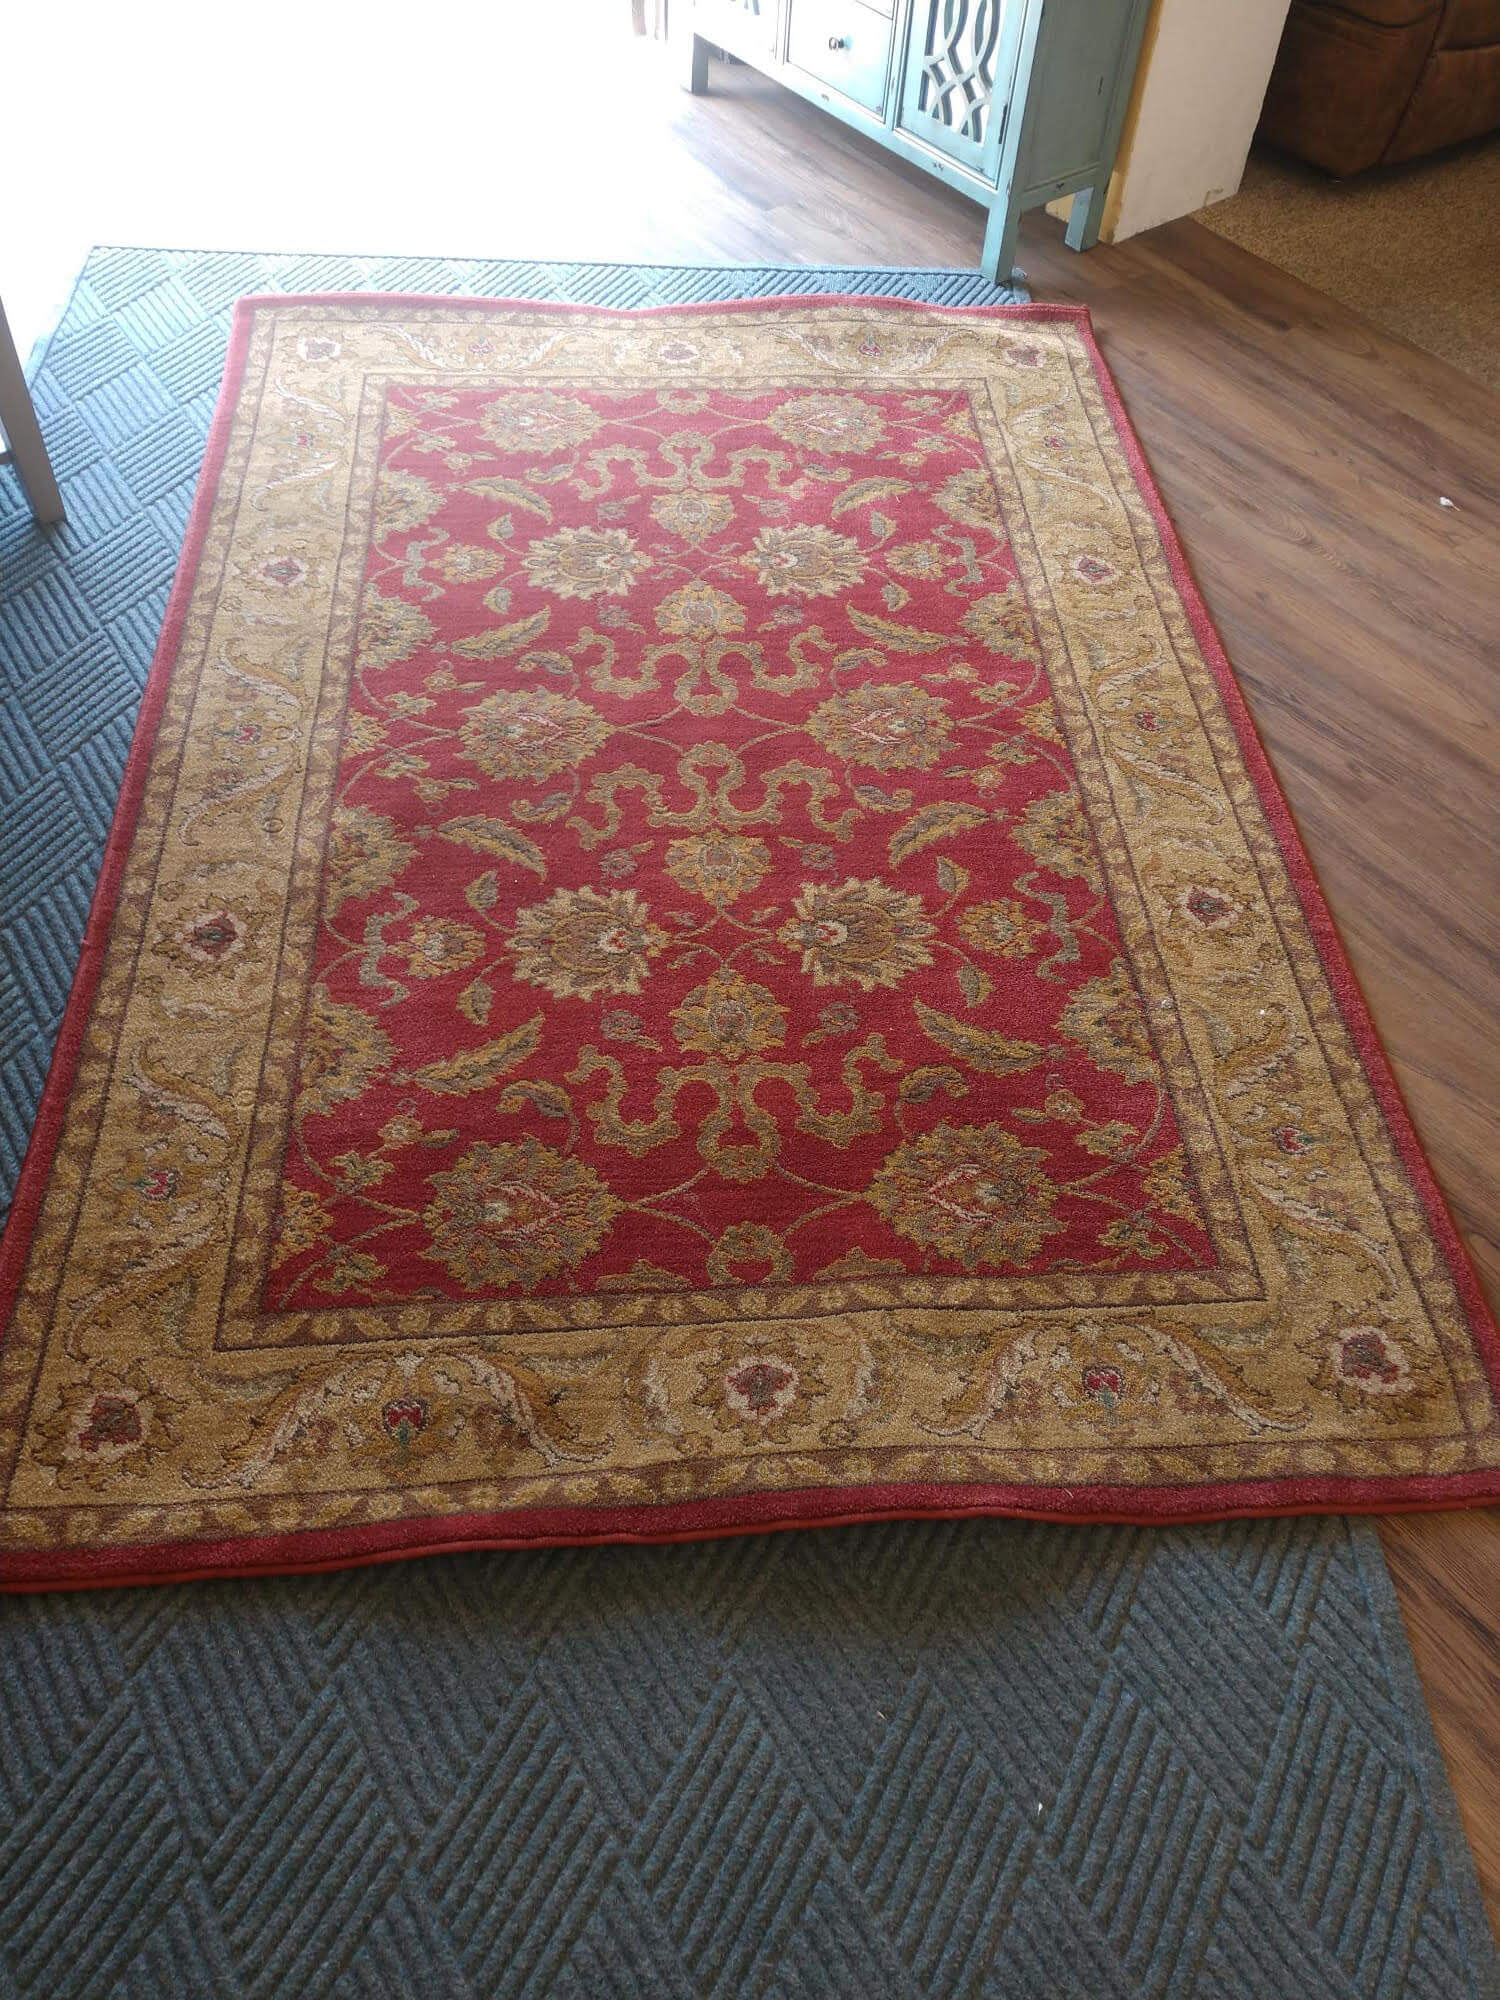 Area Rugs From $80